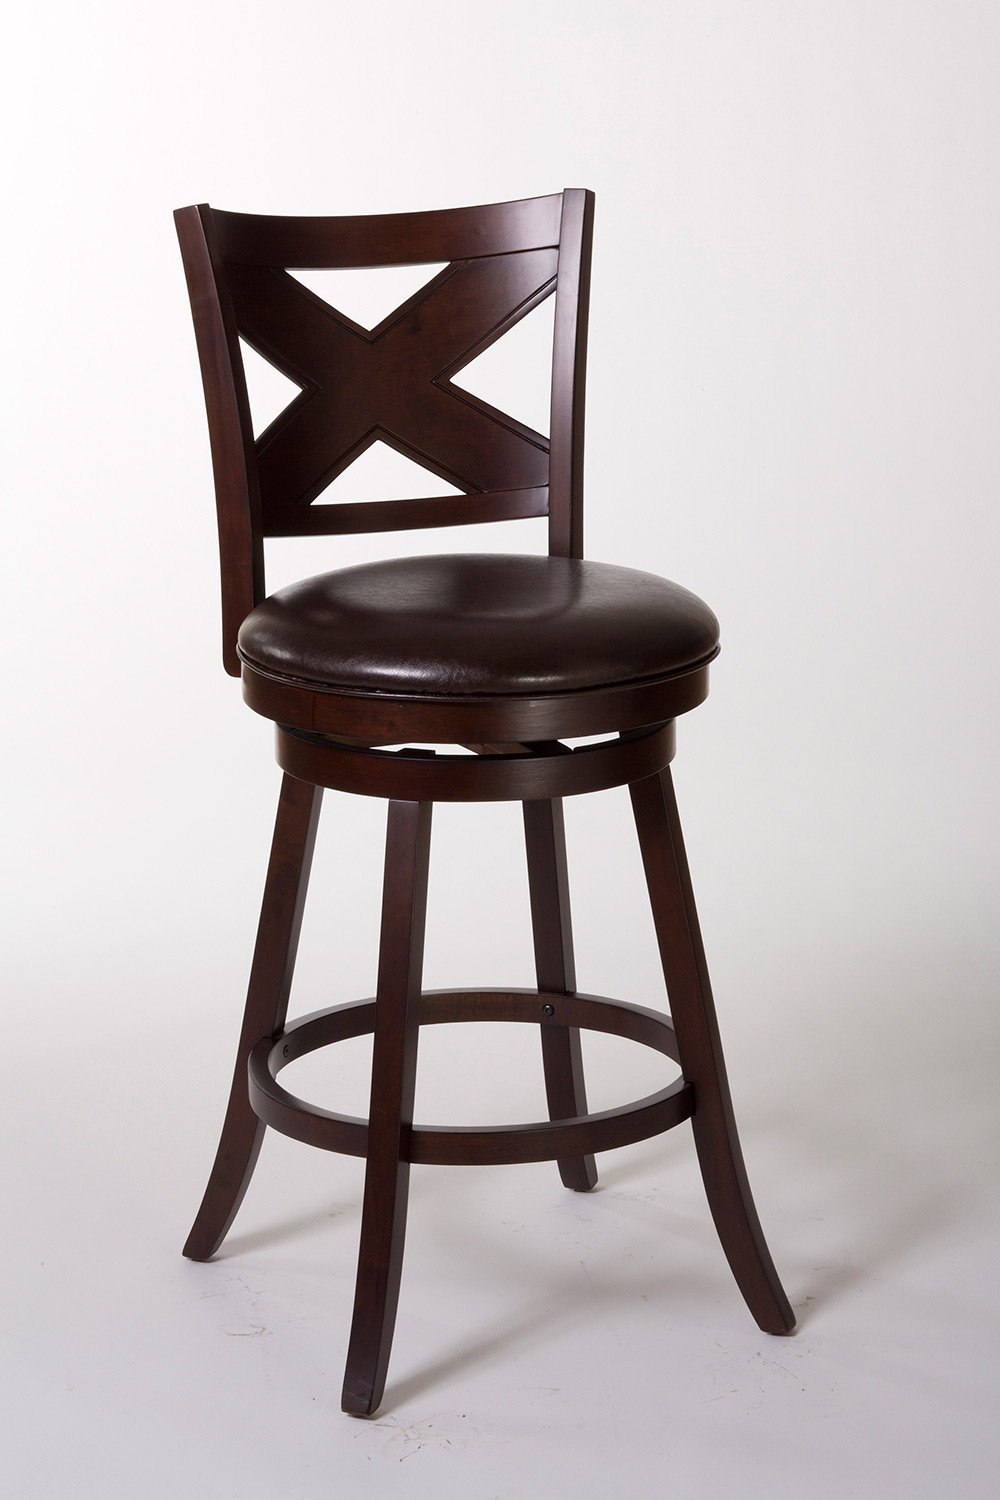 Hillsdale ashbrook swivel bar stool cherry brown pu